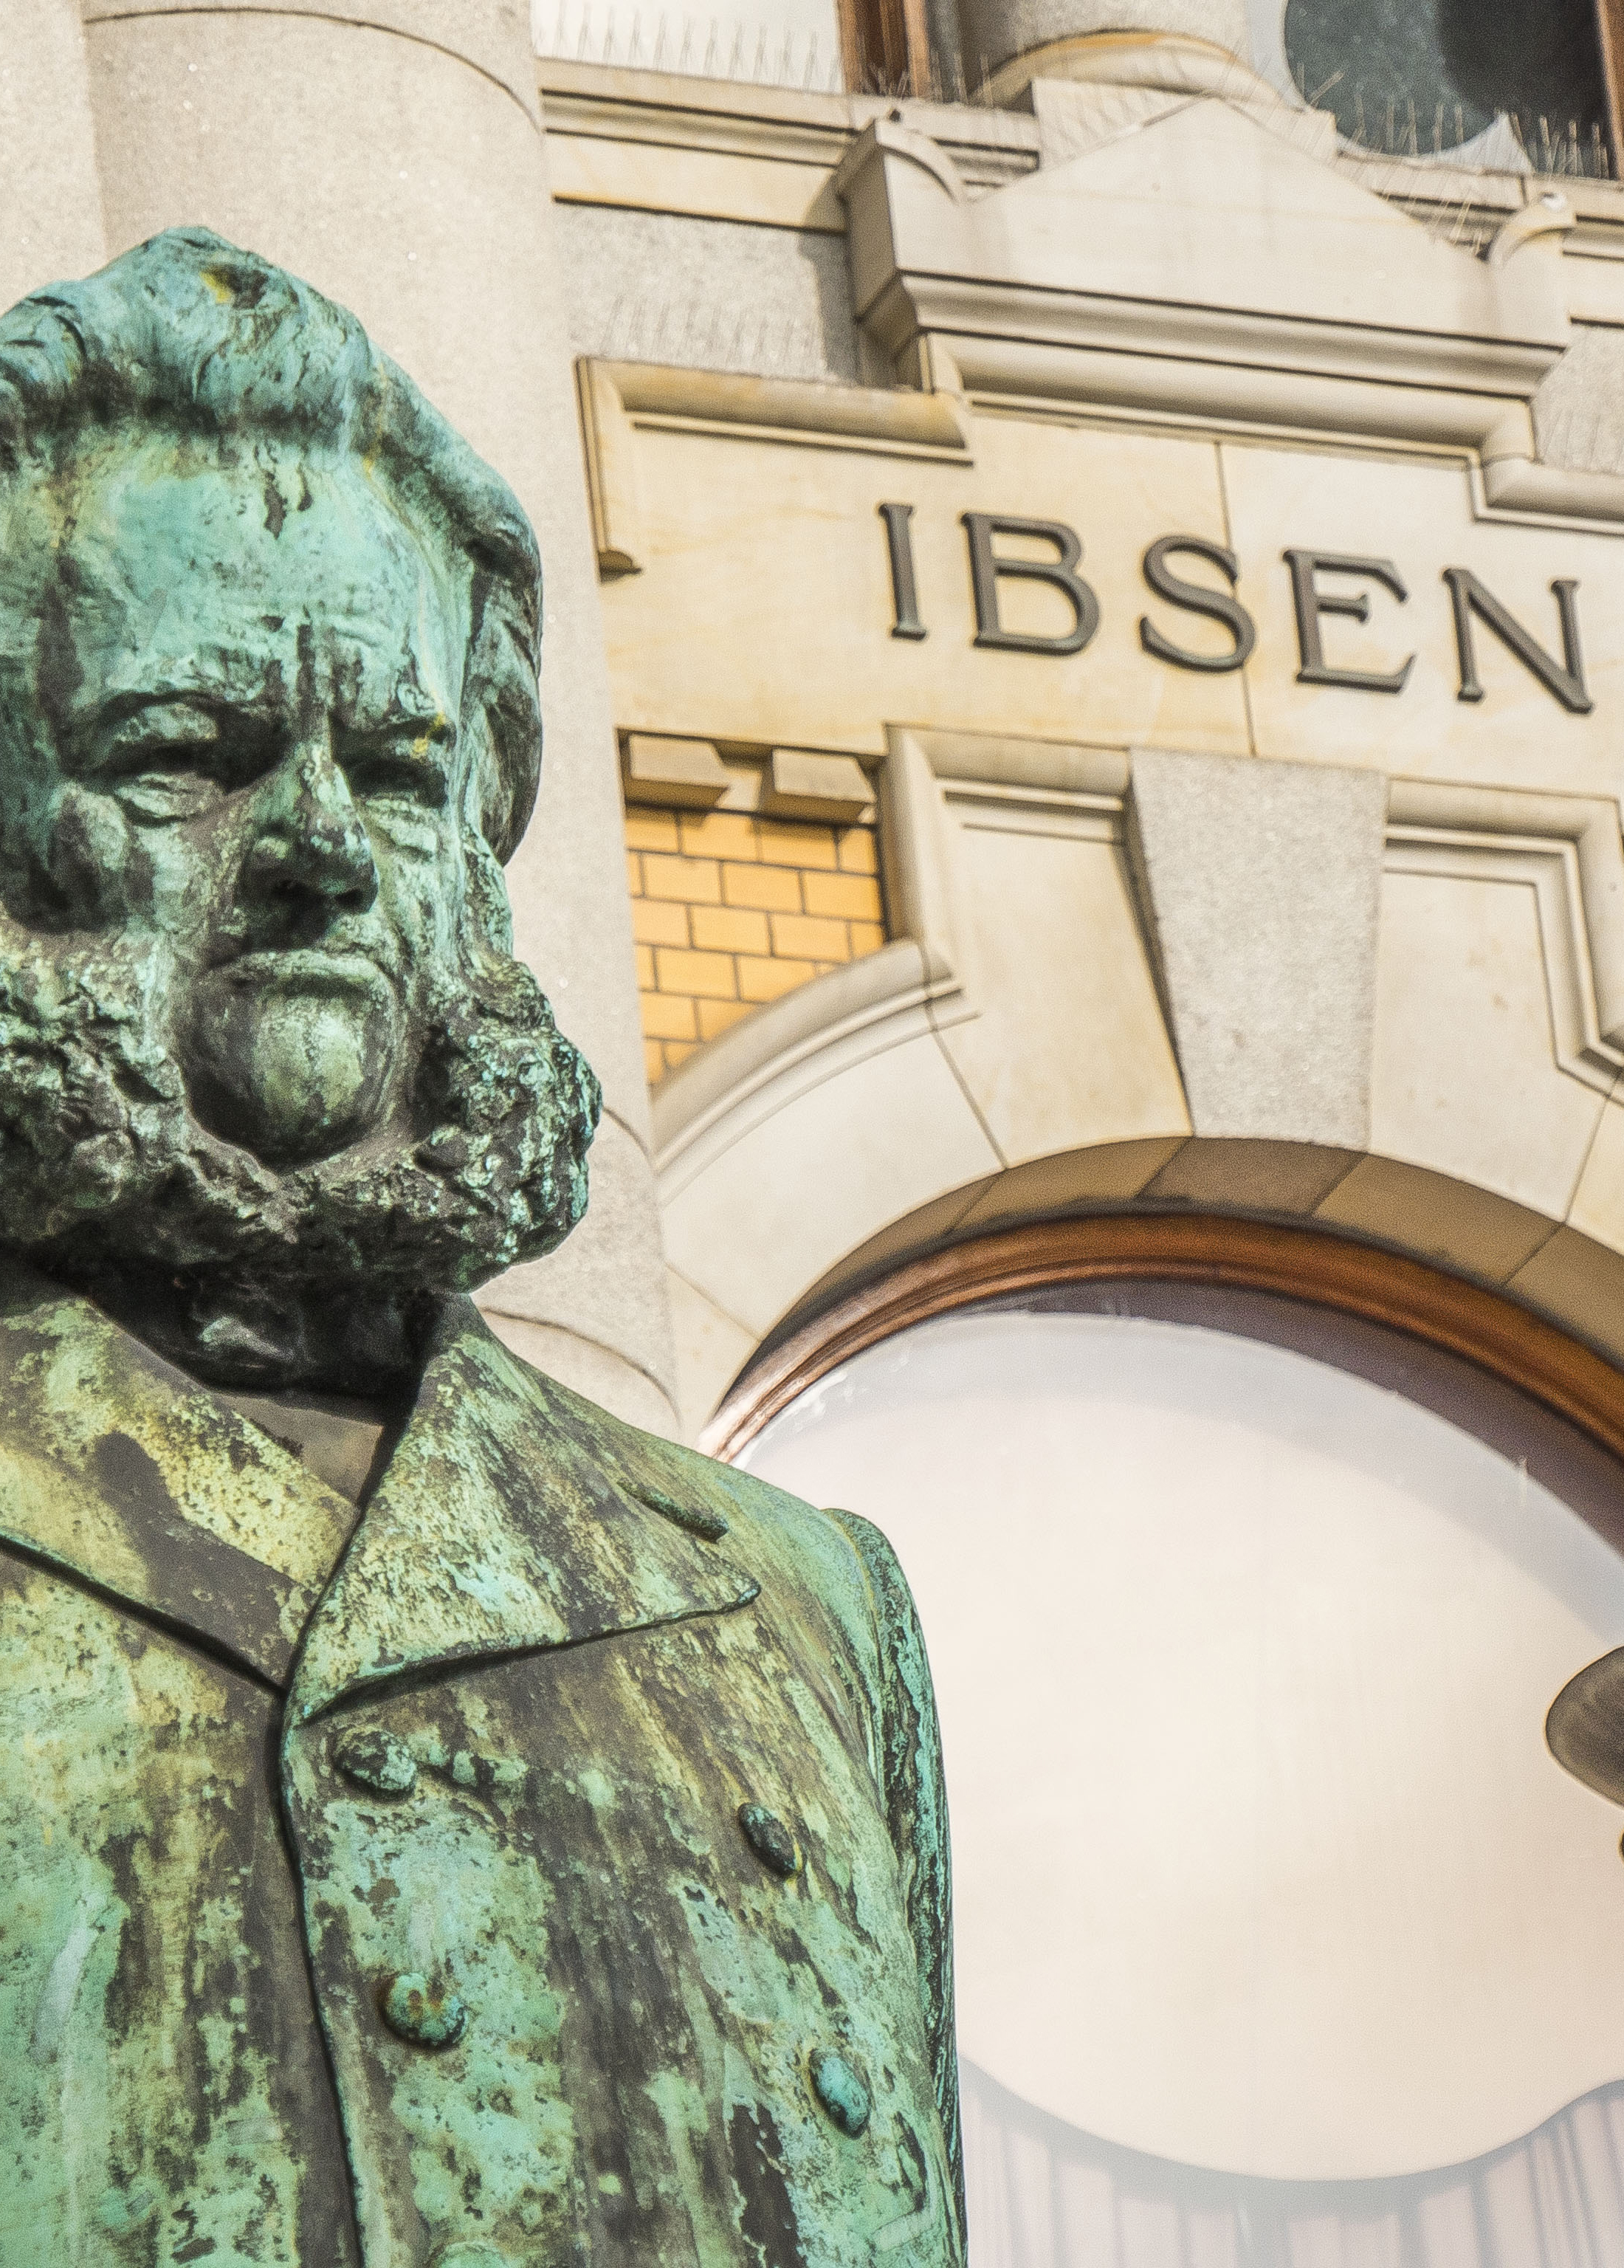 Ibsen in front of Oslo's National Theatre